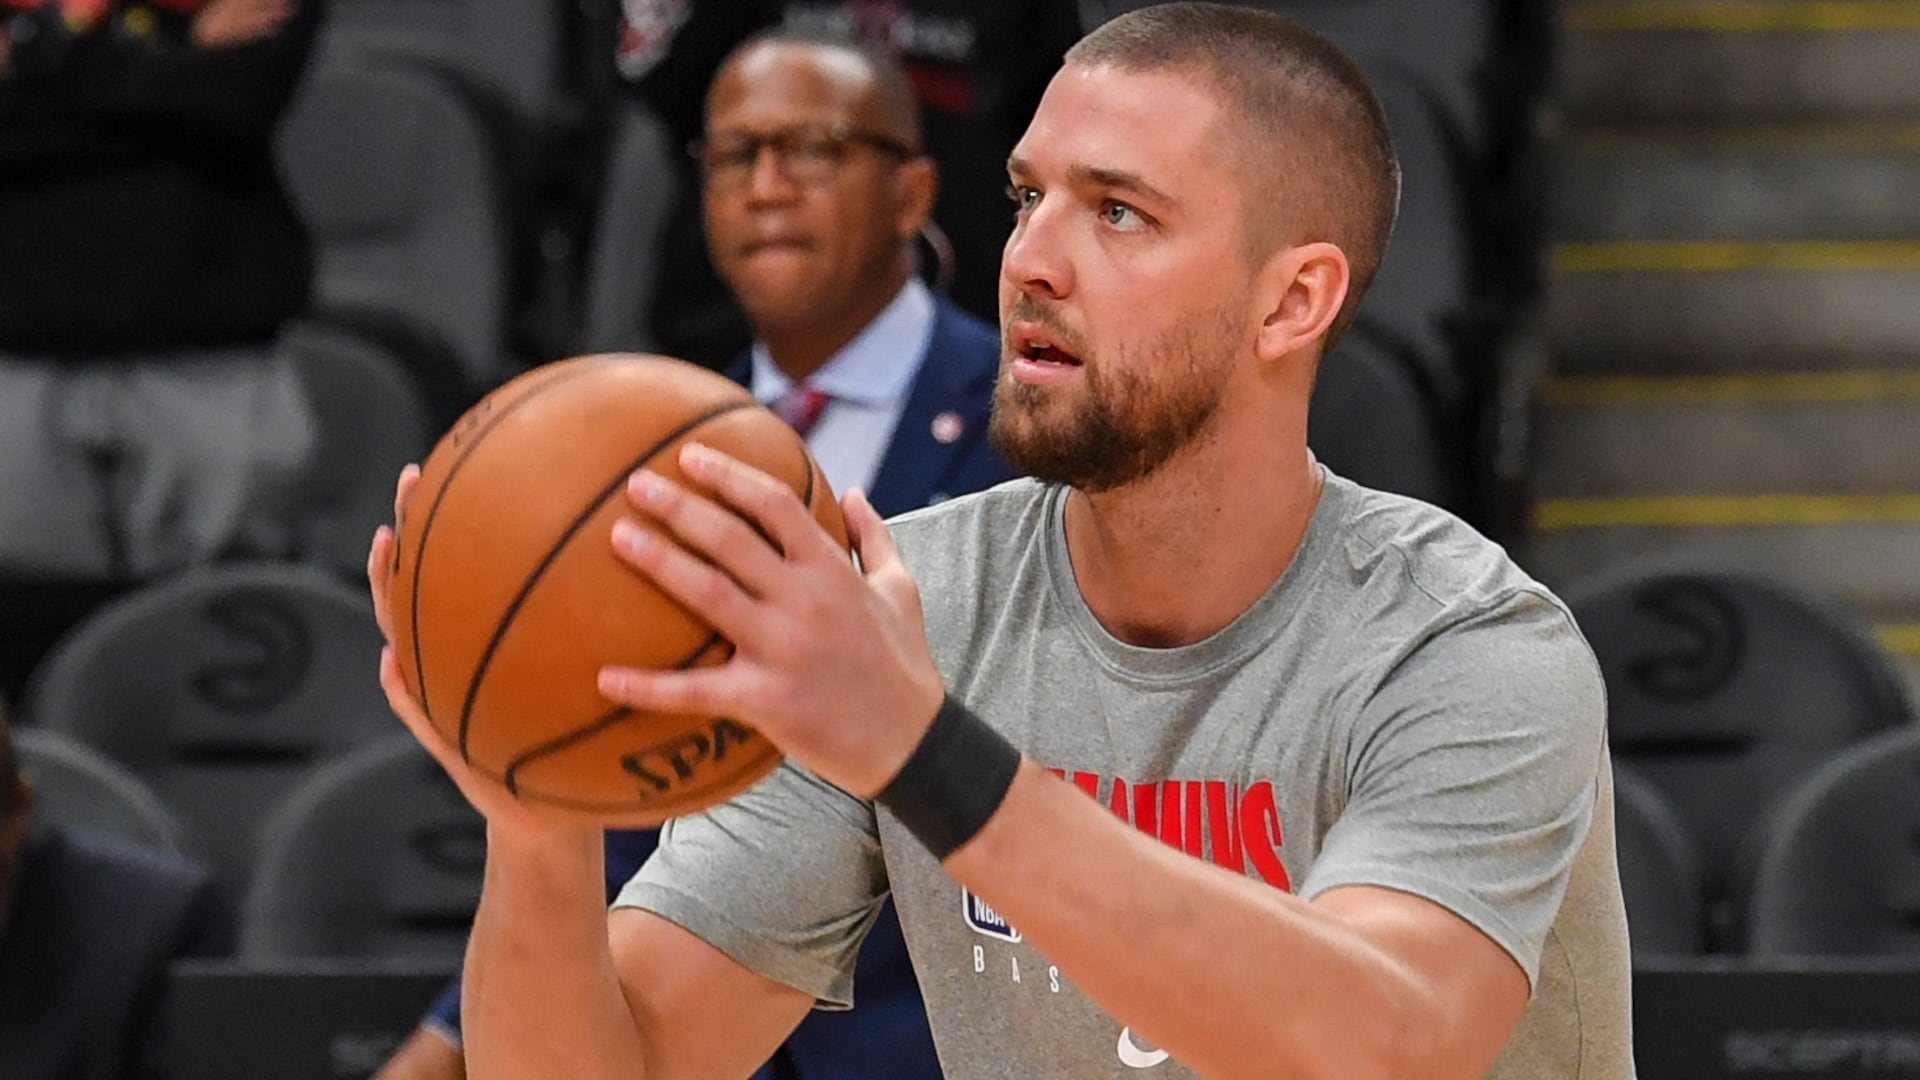 Hawks' Chandler Parsons heads to California to rehab injuries